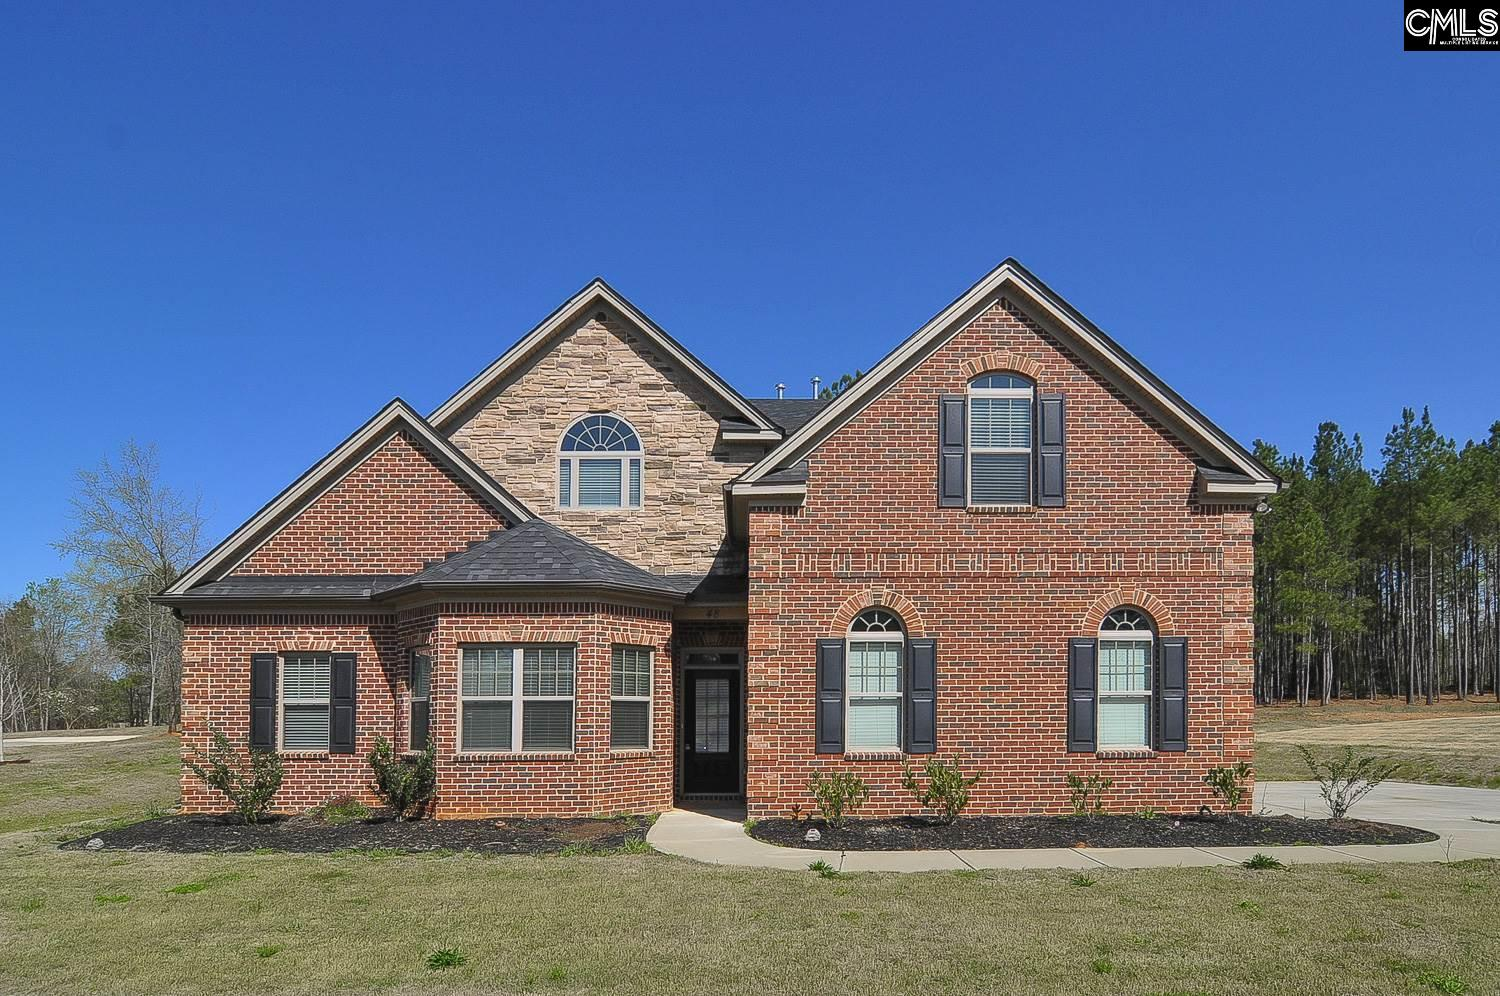 48  Mclester Columbia, SC 29203